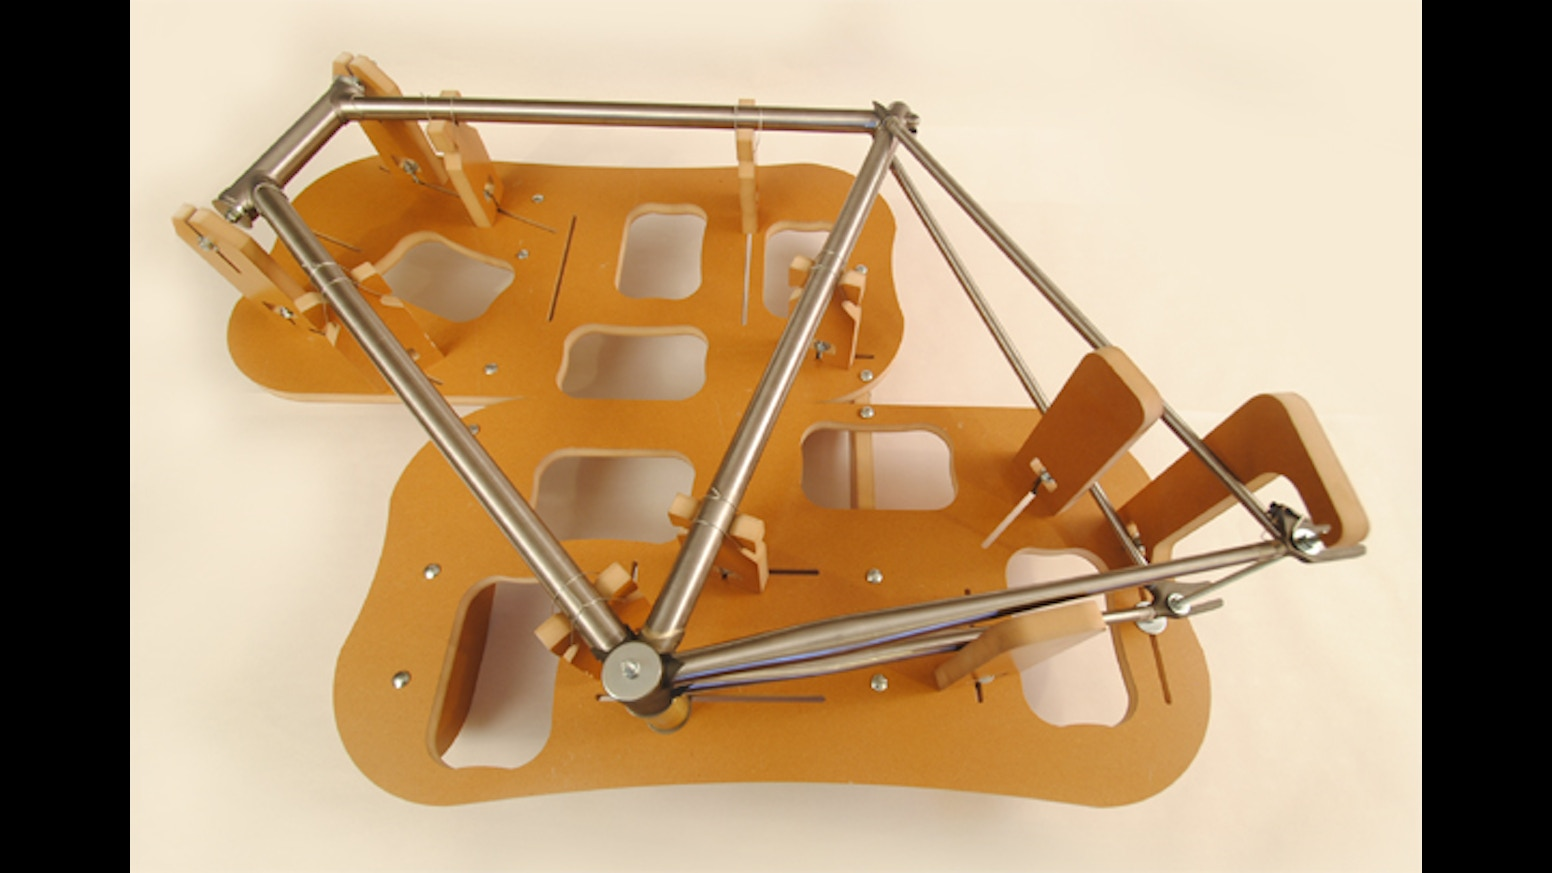 the jiggernaut is an inexpensive frame building jig that can help anyone build a custom high quality bicycle